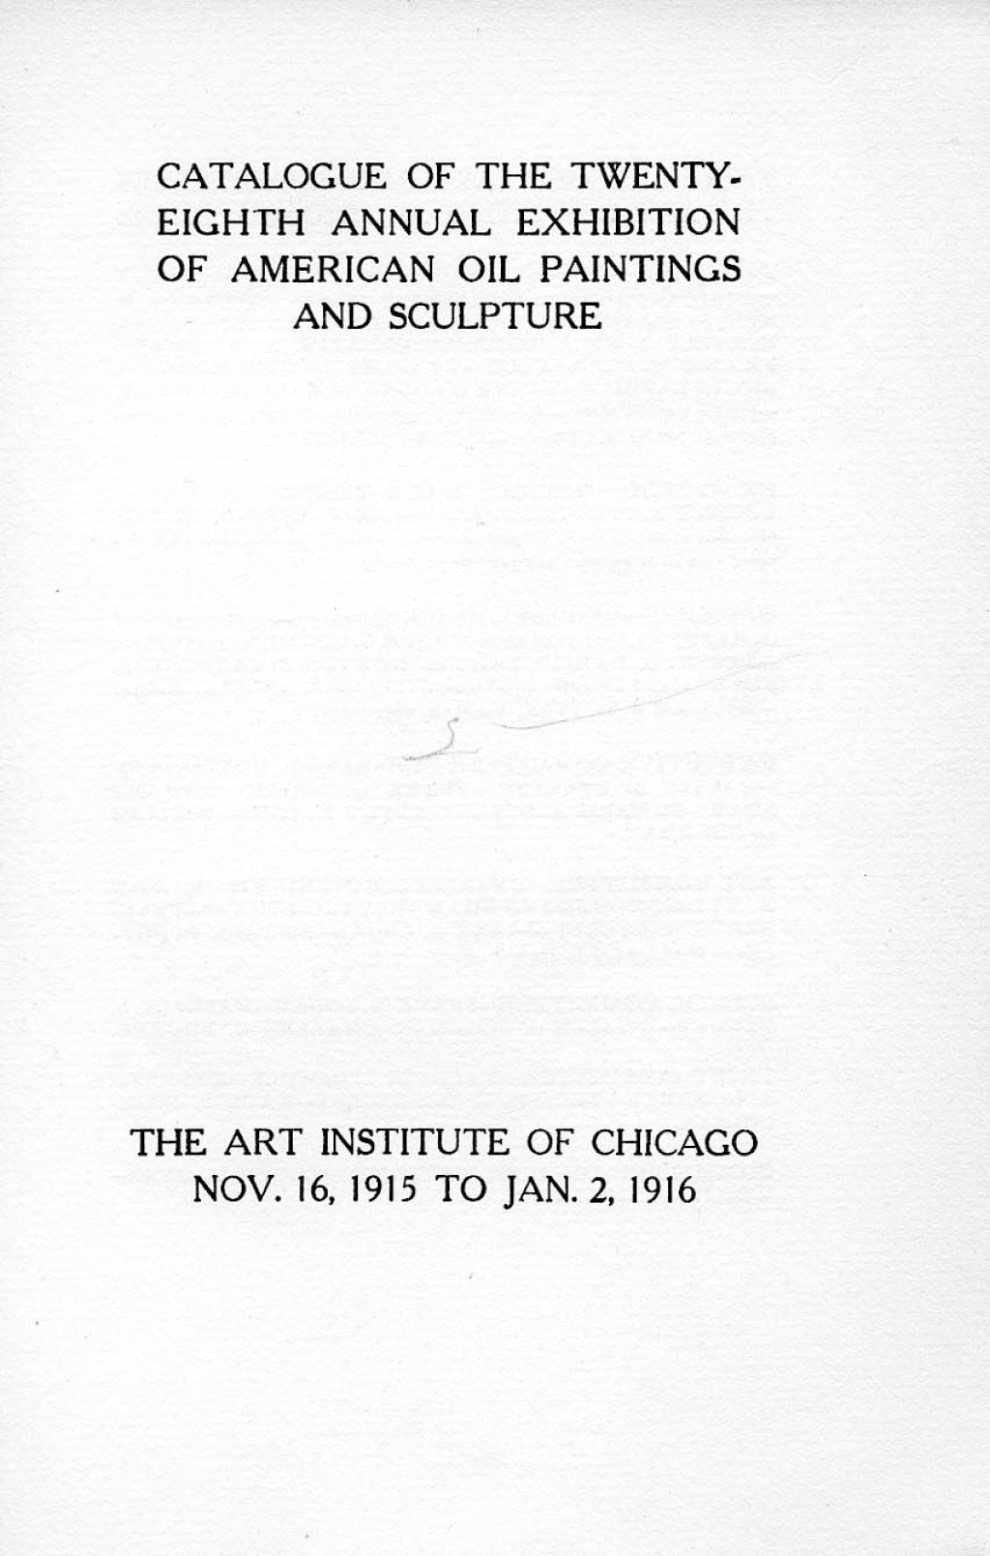 "1915 Art Institute of Chicago, Chicago, IL, ""Twenty-Eighth Annual Exhibition of American Oil Paintings and Sculpture"", November 16, 1915 - January 2, 1916"